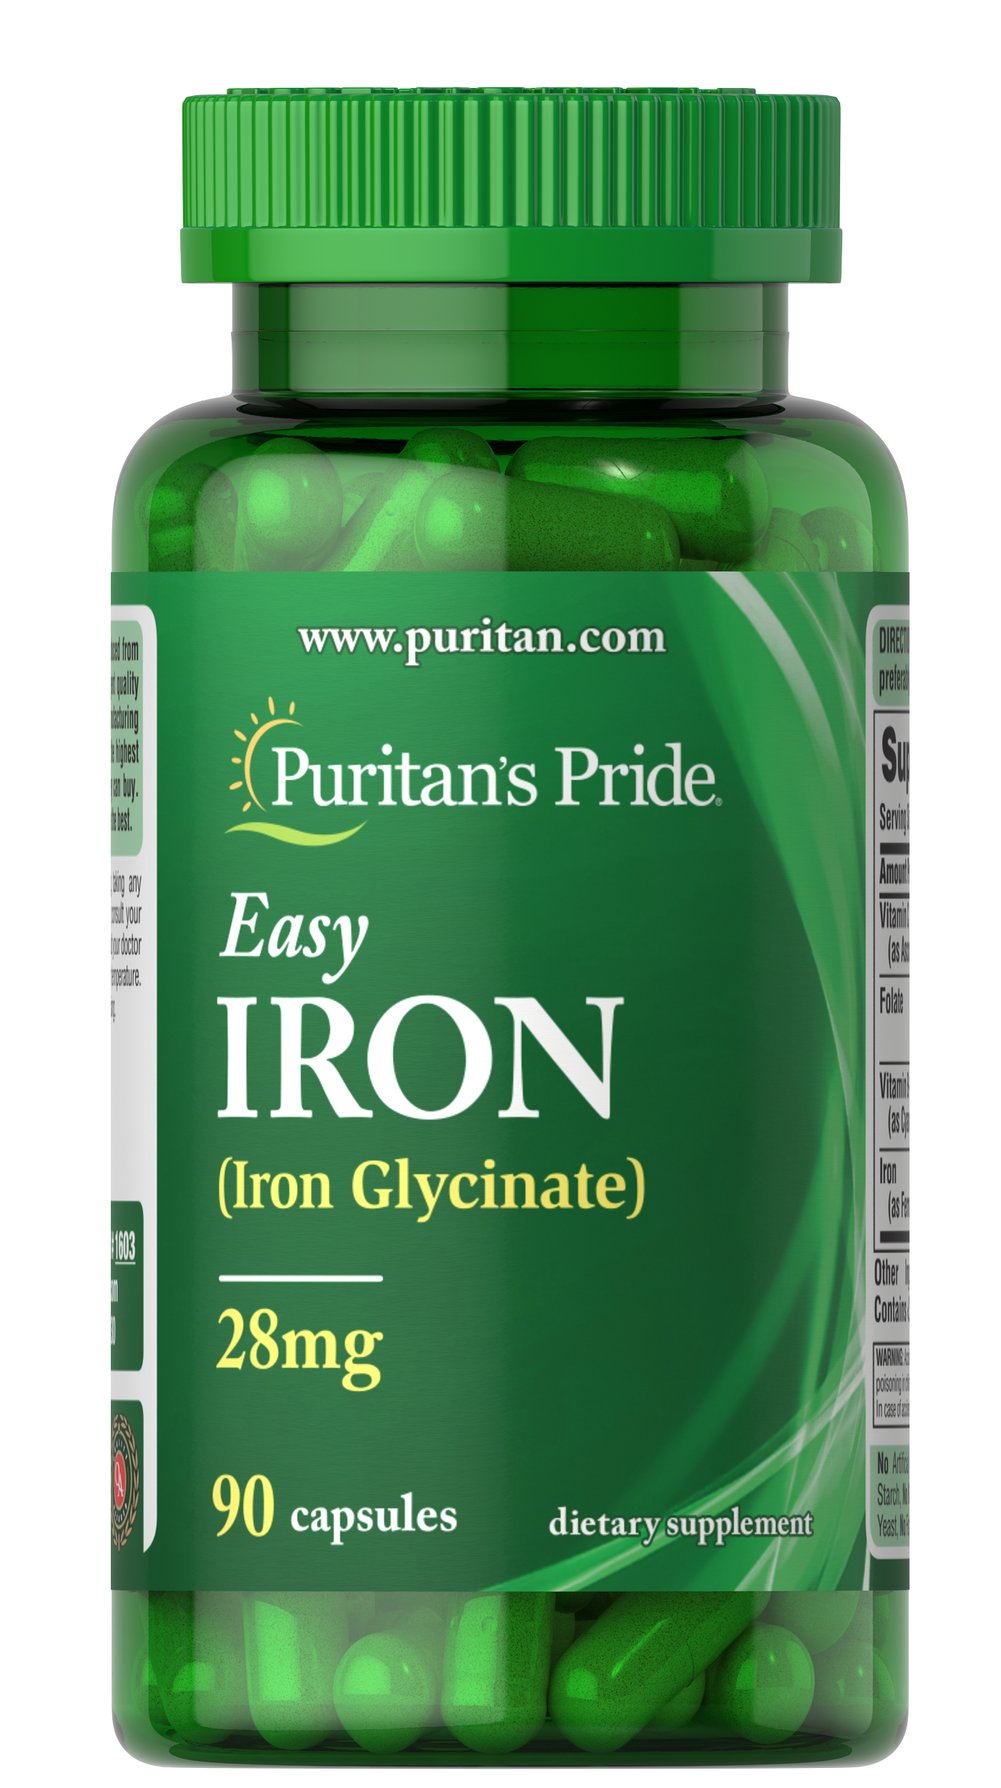 Easy Iron 28 mg (Iron Glycinate)  90 Capsules 28 mg $10.99